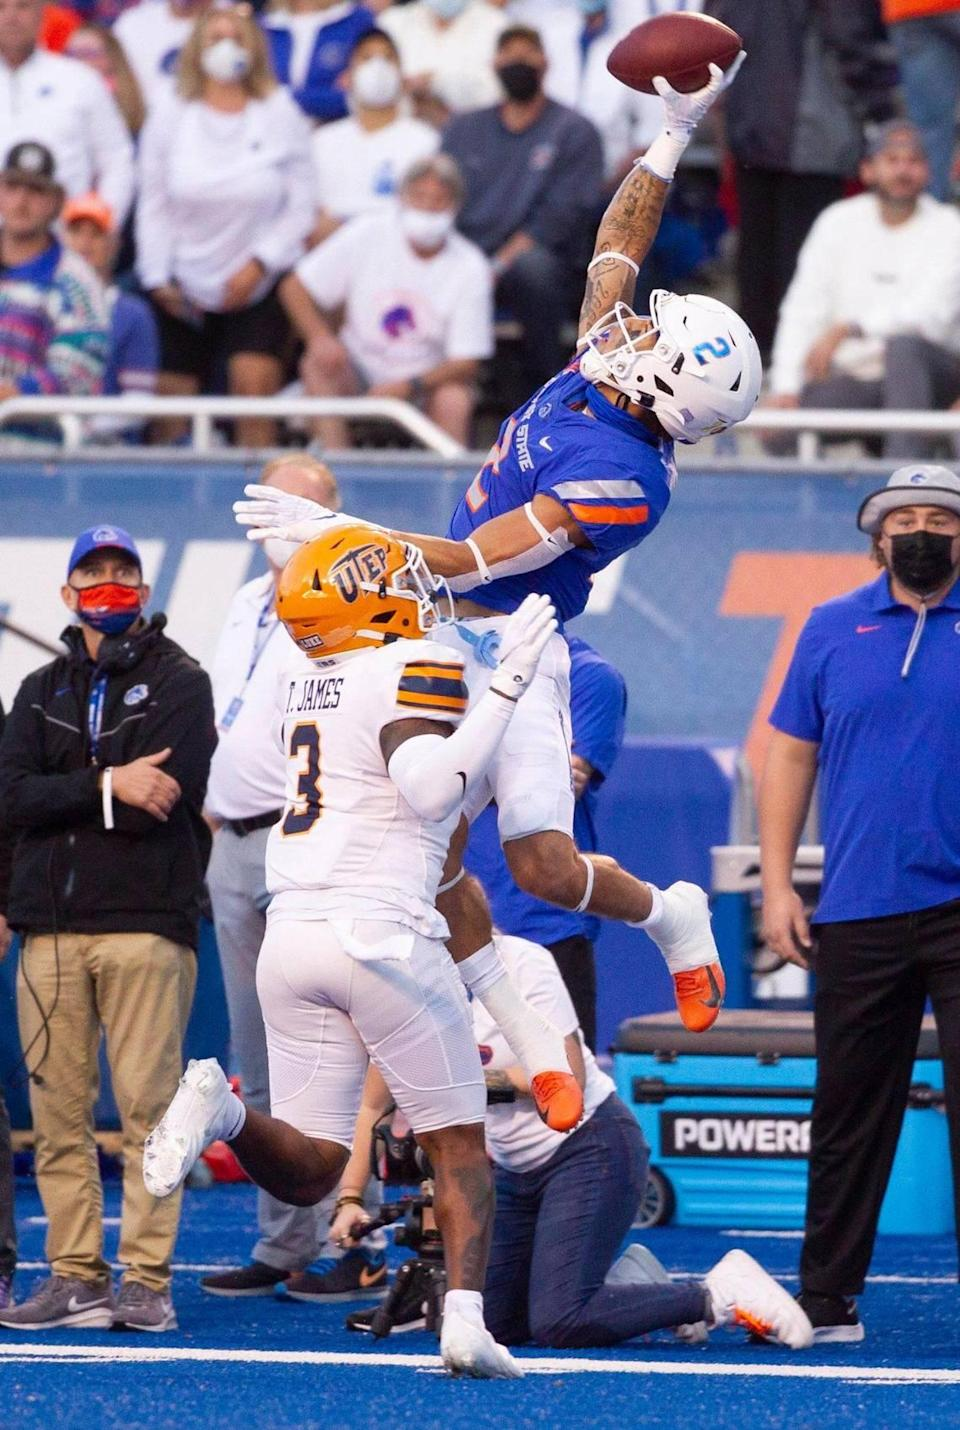 Boise State wide receiver Khalil Shakir reaches high for a one-handed catch while defended by UTEP safety Ty'reke James during the first half of their game at Albertsons Stadium.